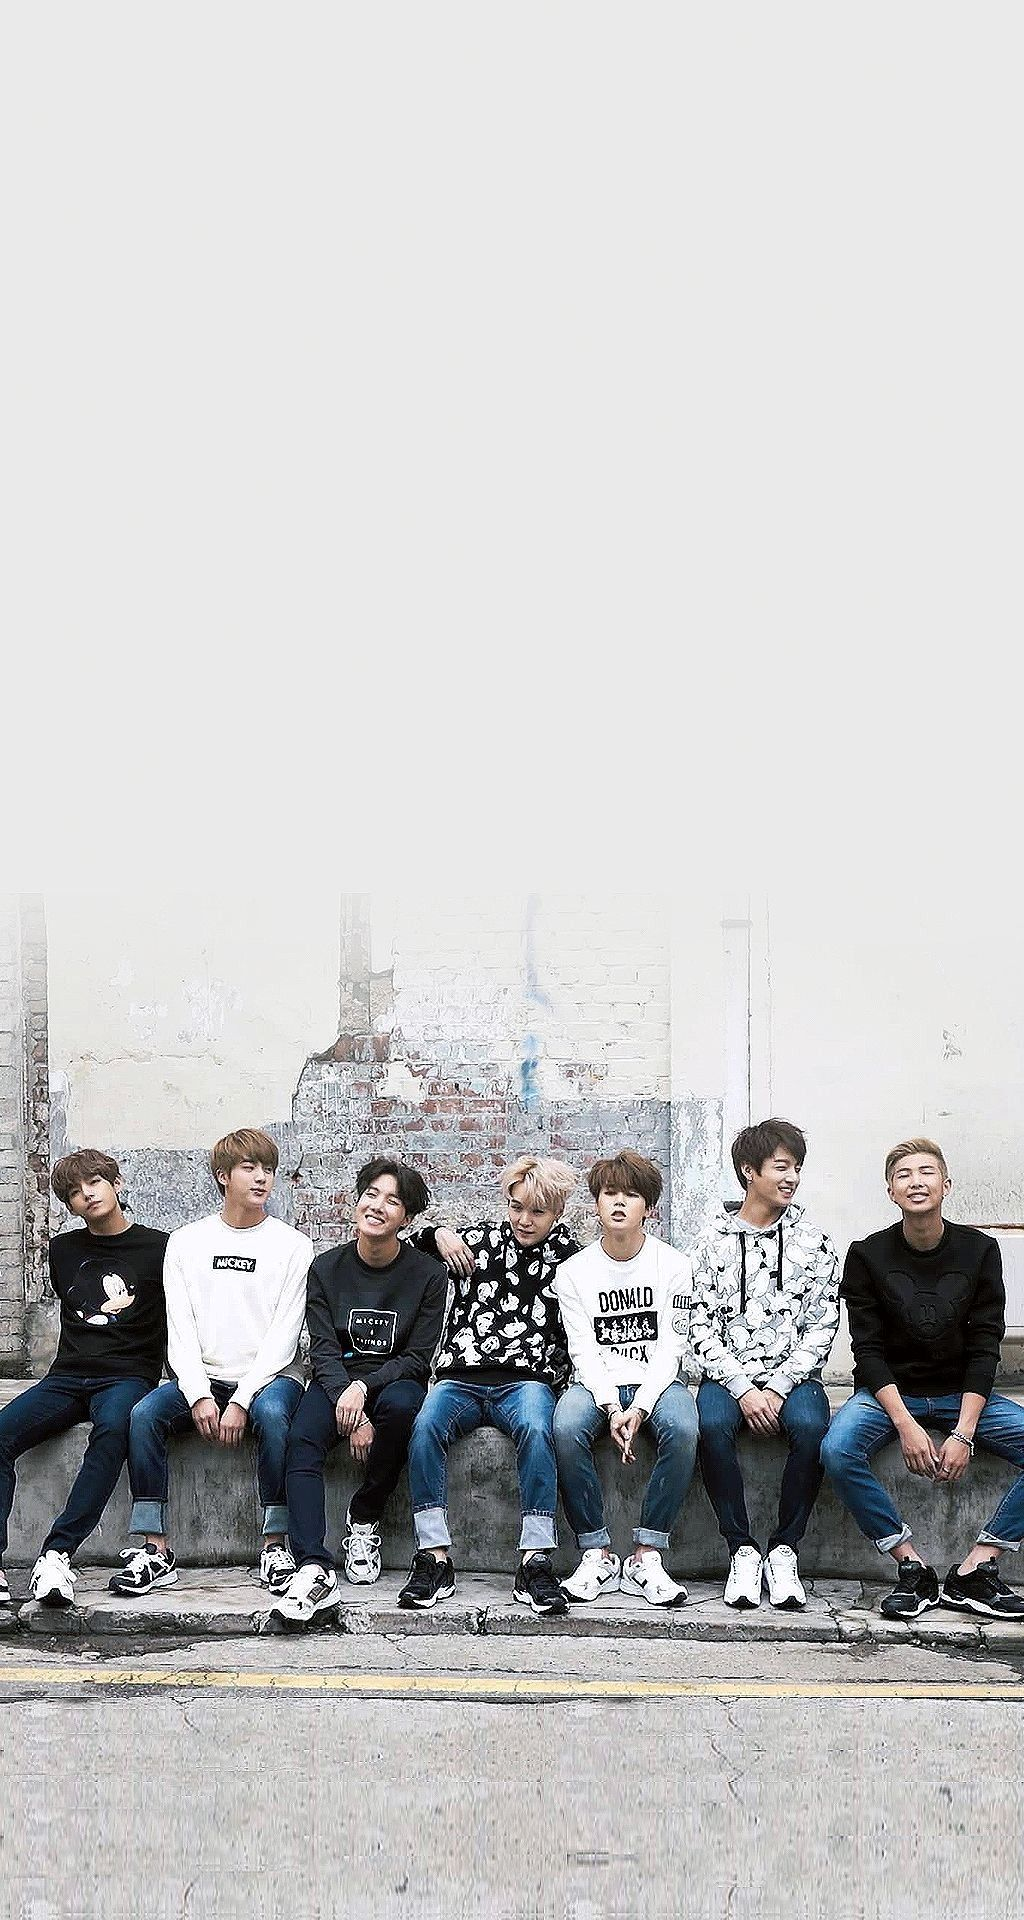 Beautiful Bts Phone Wallpaper Hd In 2020 Bts Group Bts Wallpaper Bts Lockscreen